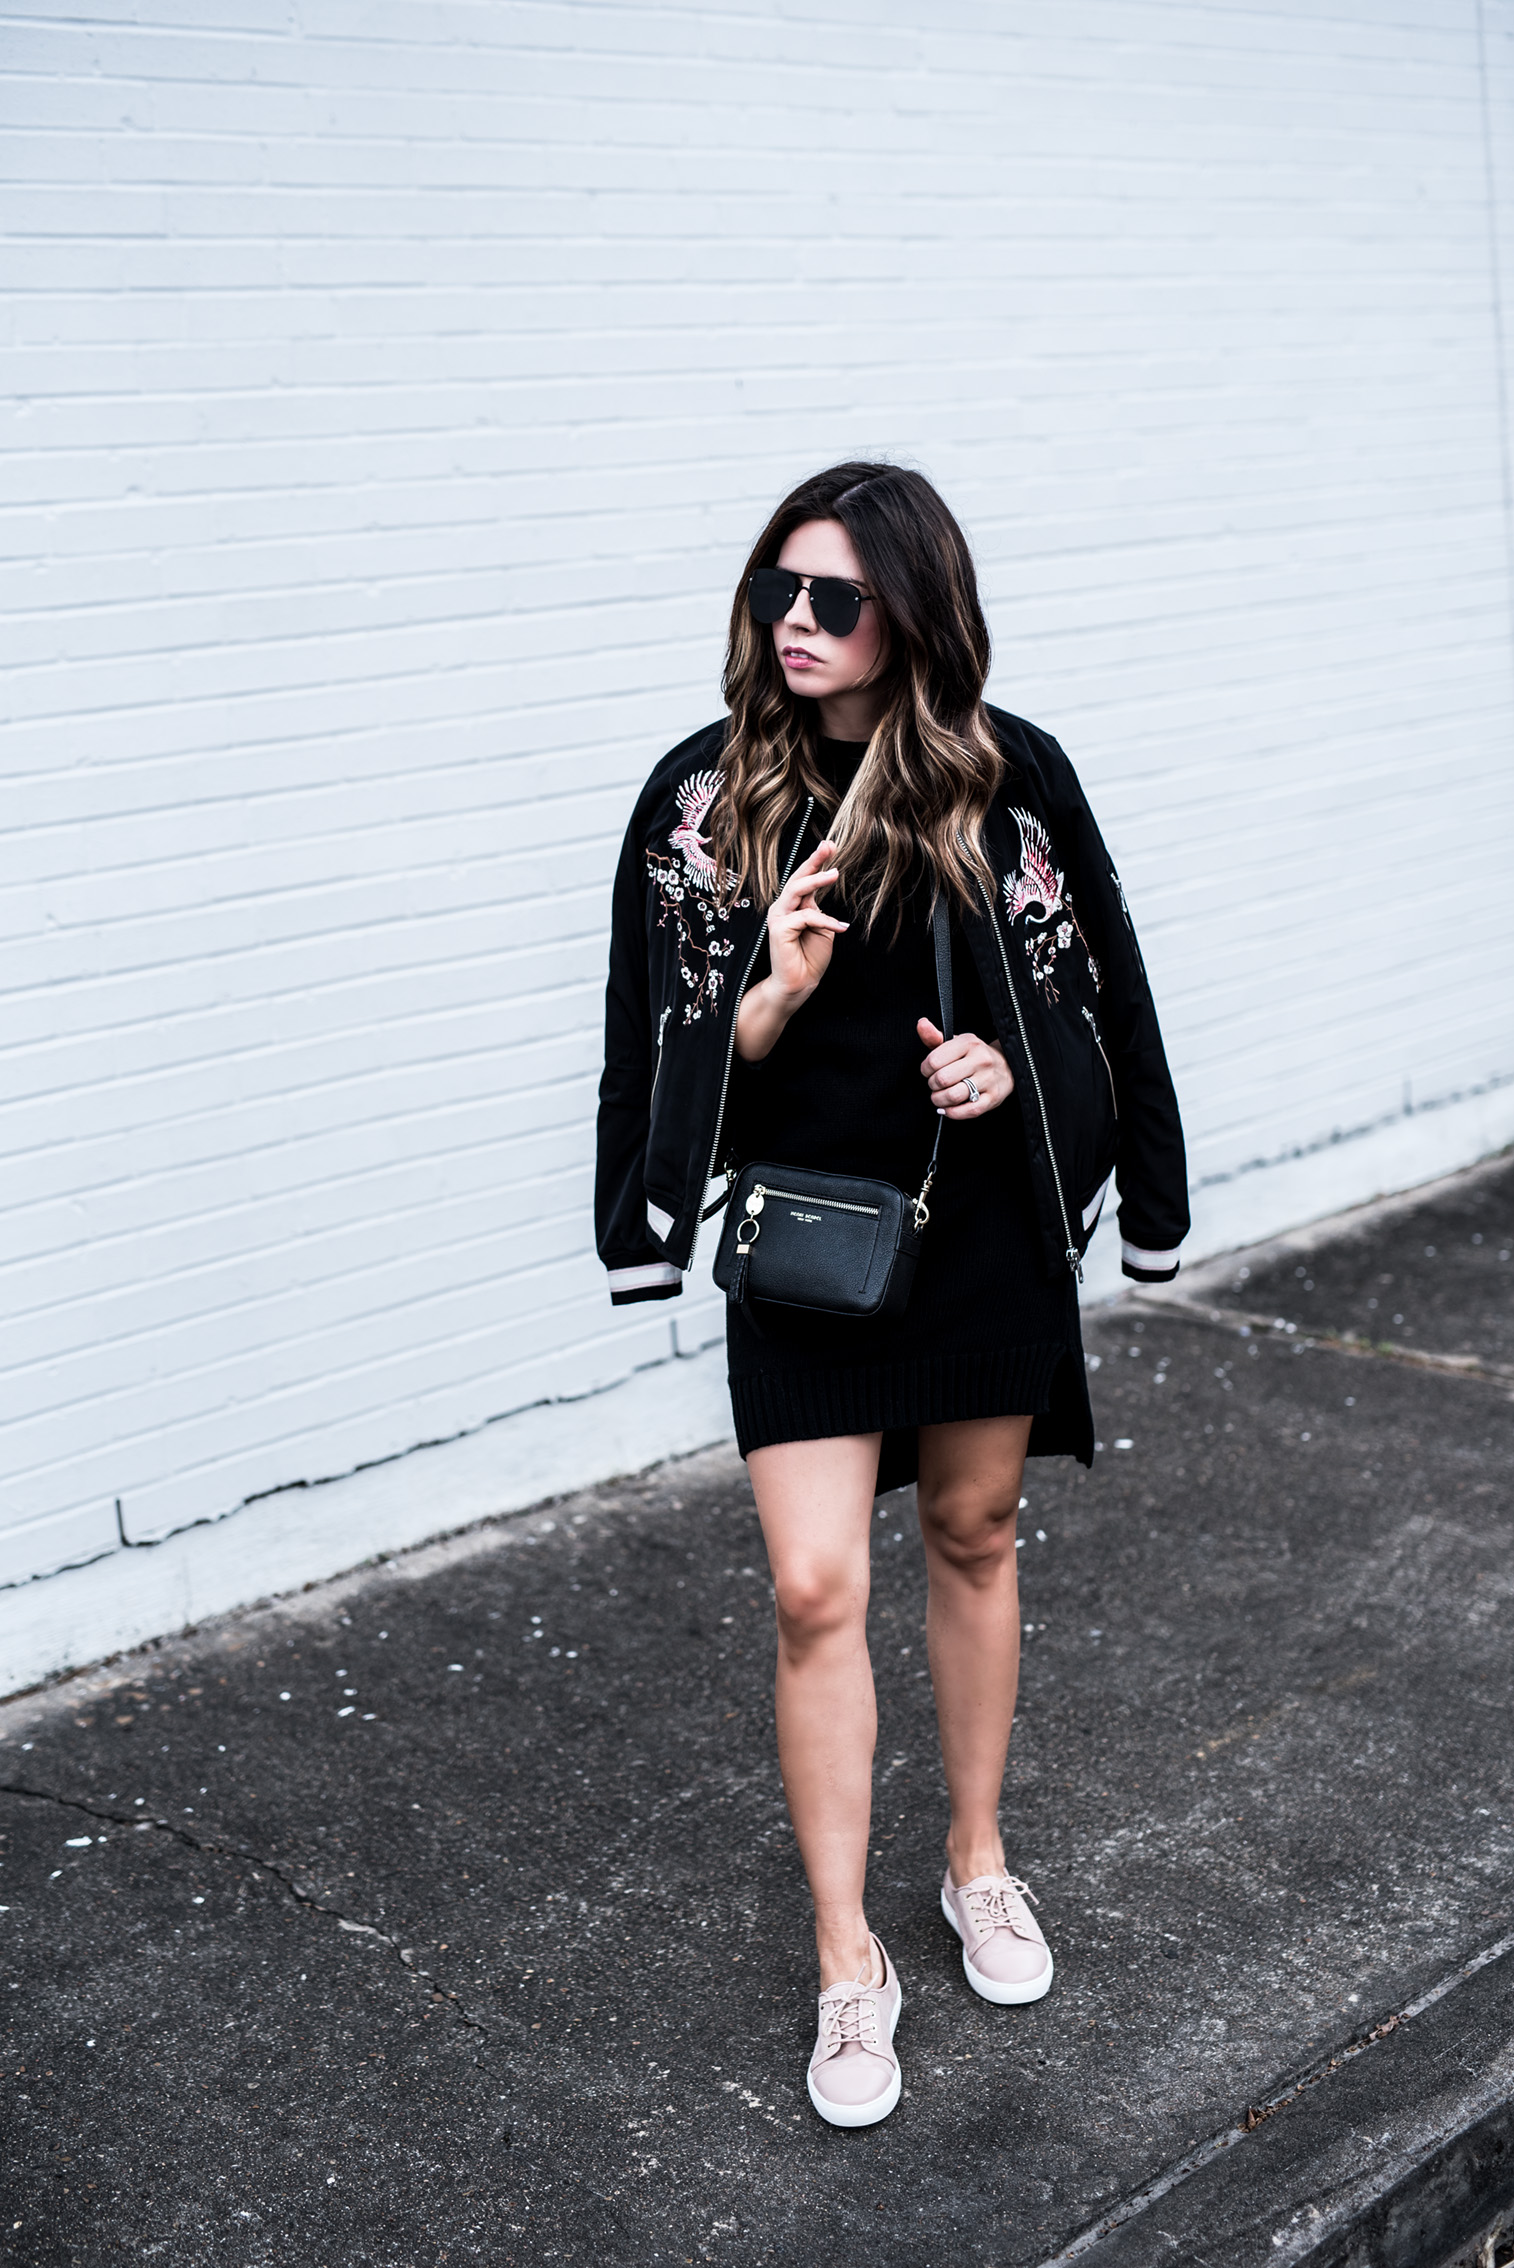 Houston fashion blogger wearing a col shoulder sweater dress by Revolve, and a neutral sneaker by Elaine Turner, click to shop the look | Outfit ideas for spring, bomber jacket, blogger style, fashionista, best casual outfits